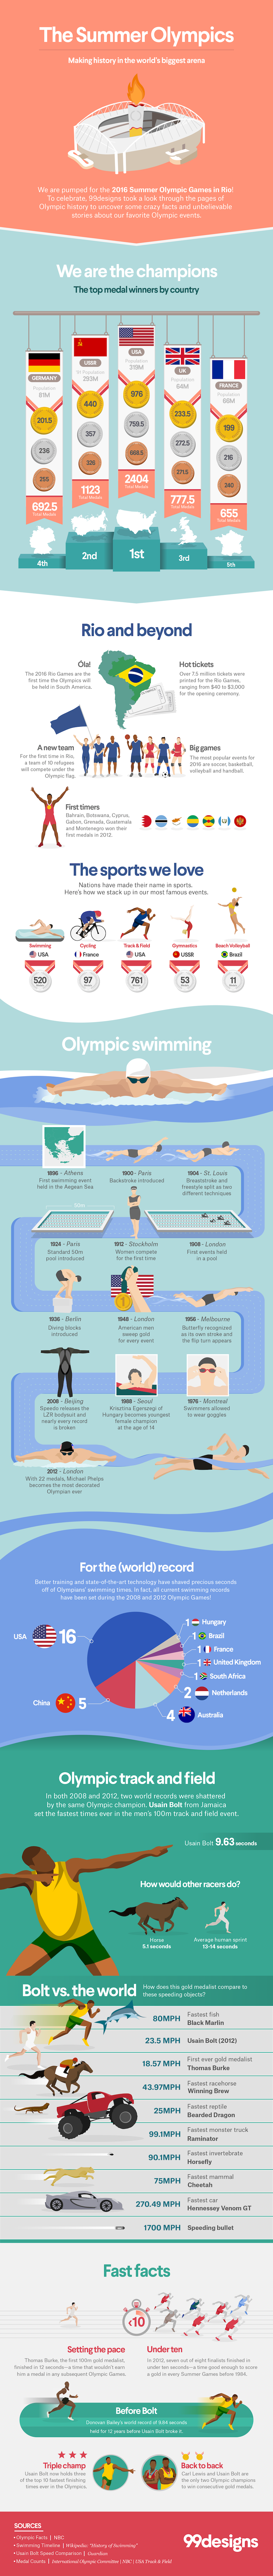 Olympic facts infographic